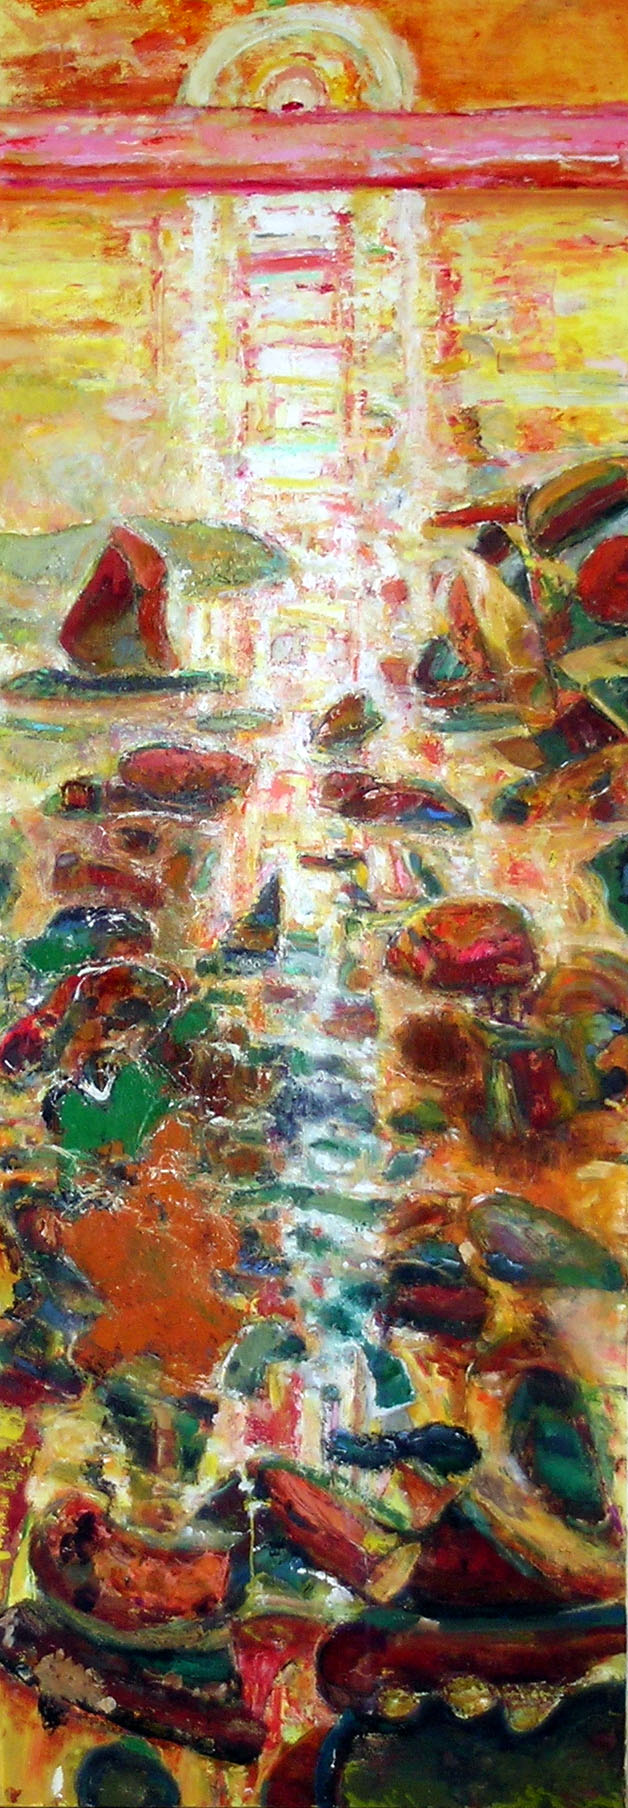 Broken Light, 2001 - 05 oil on canvas, 84 x 30 inches